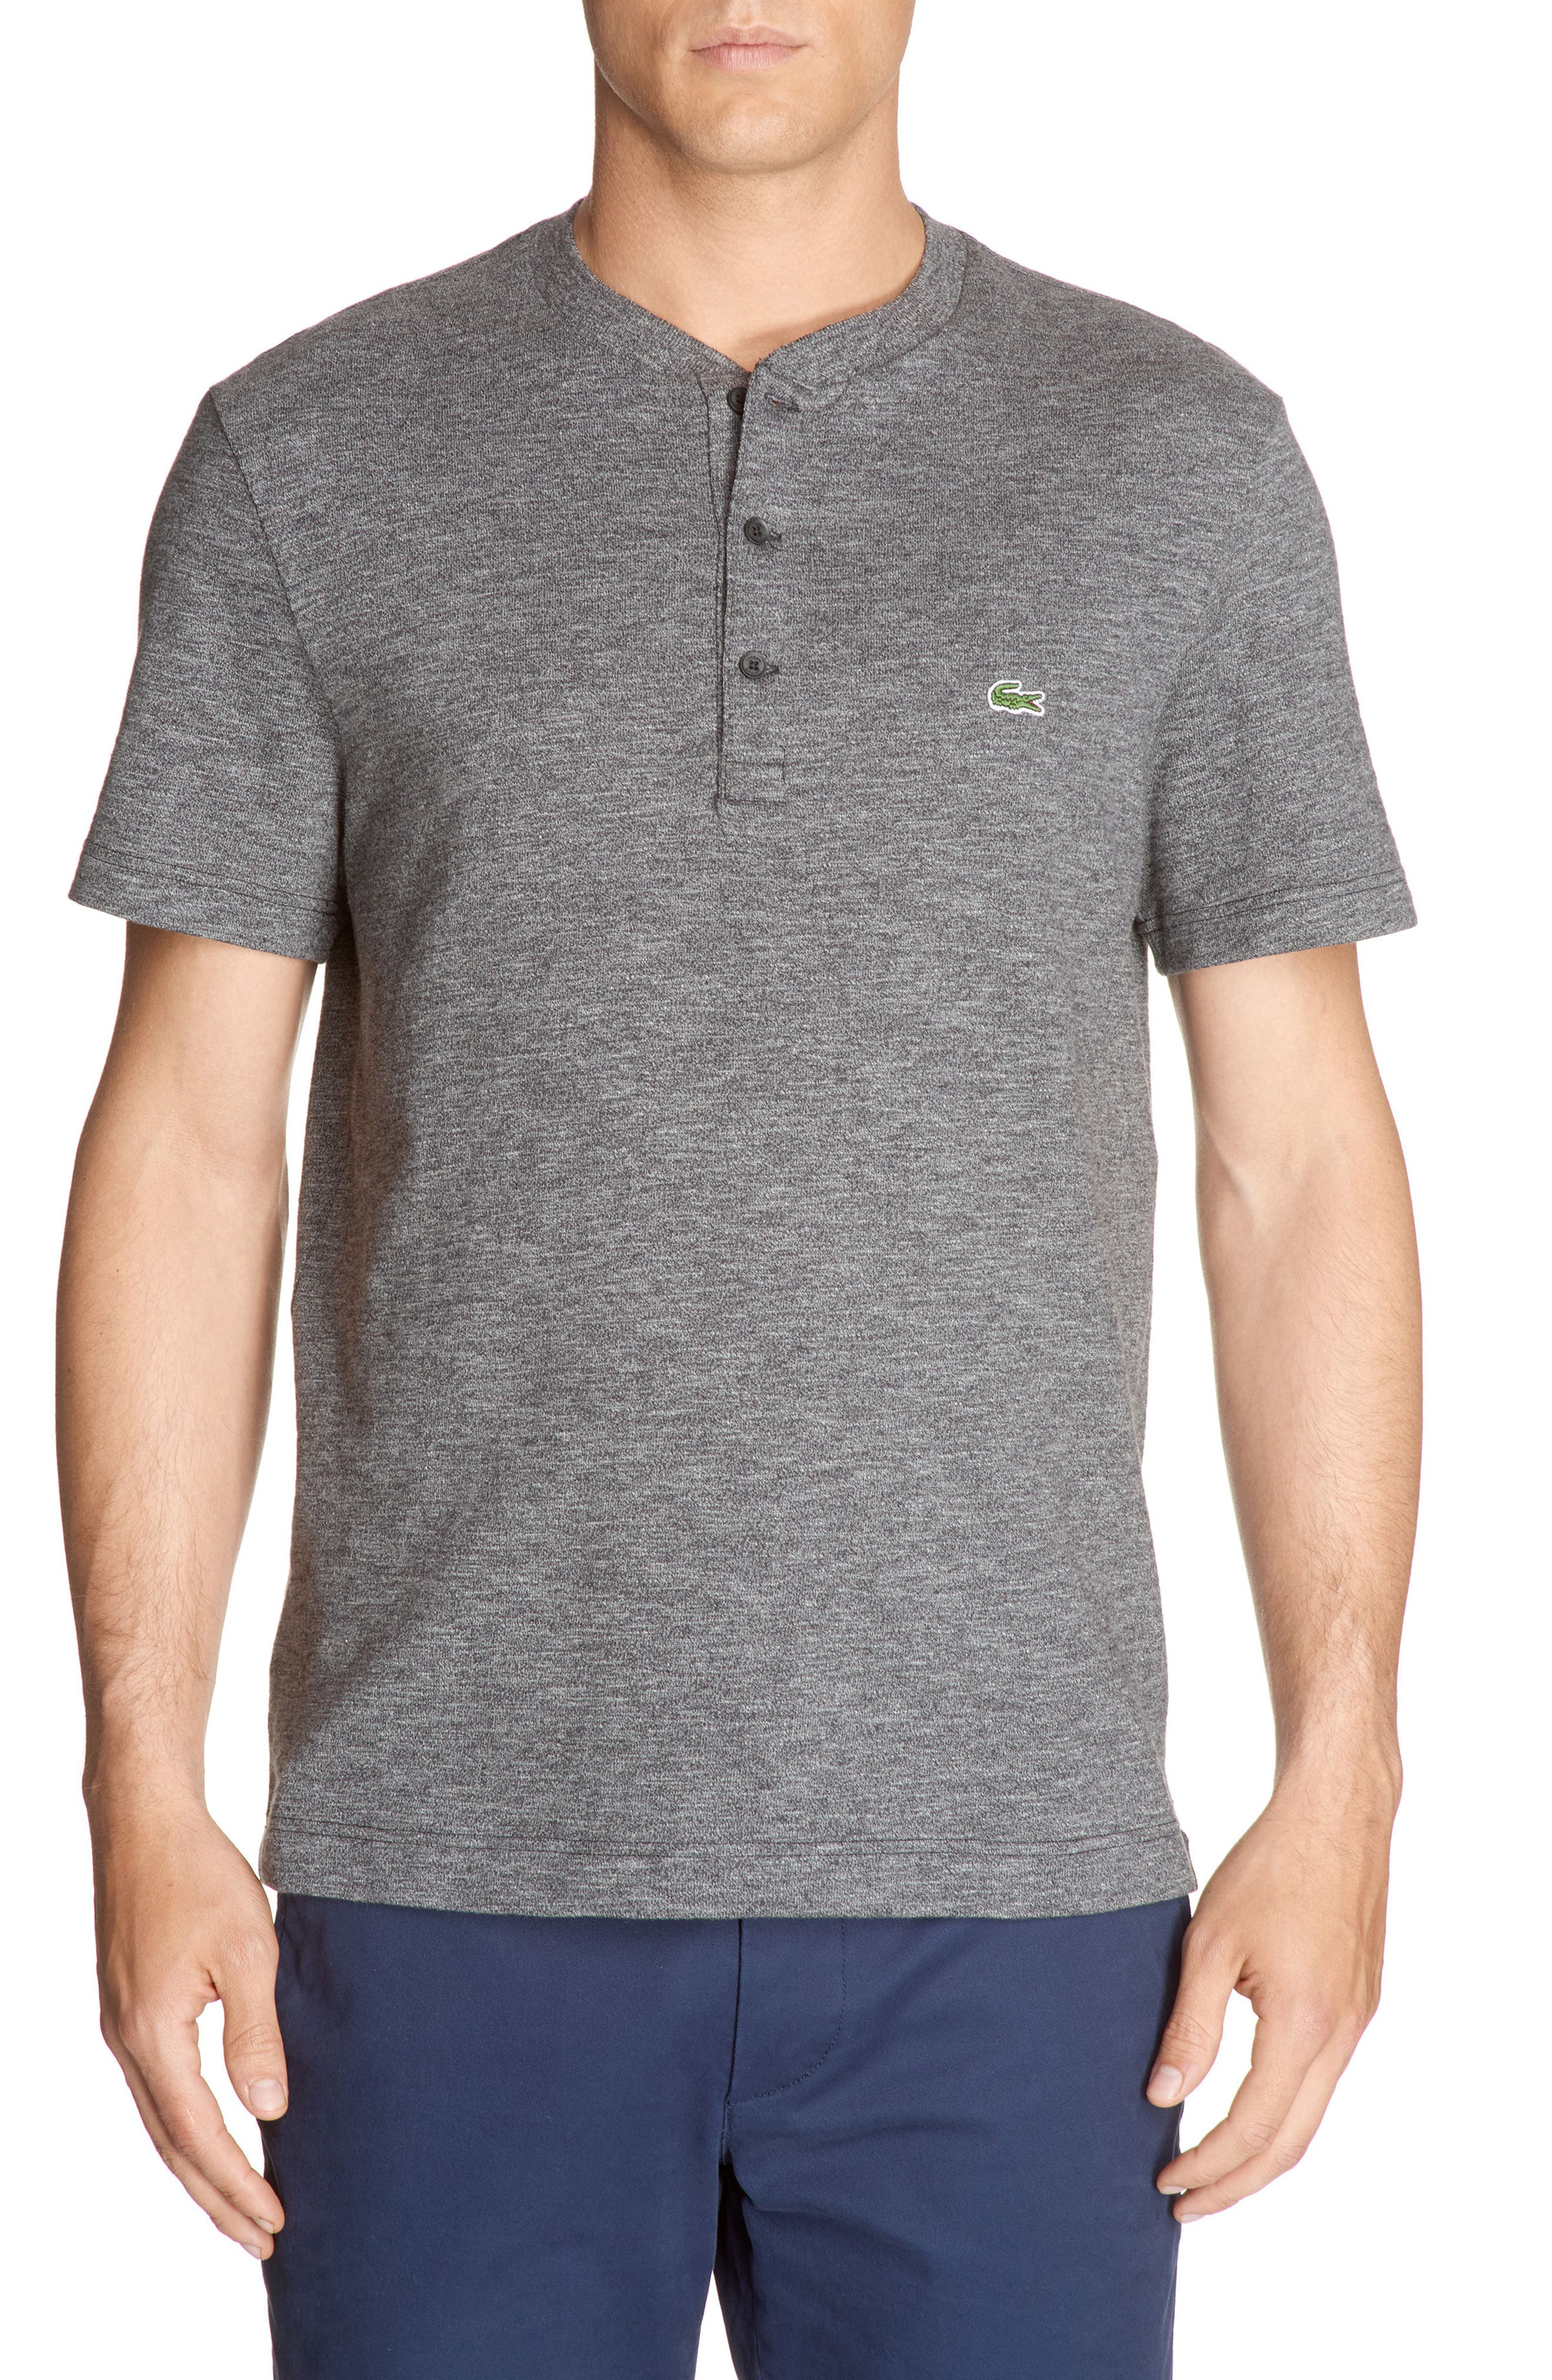 Henley T-Shirt,                         Main,                         color, Chine Cachou/ Galaxite